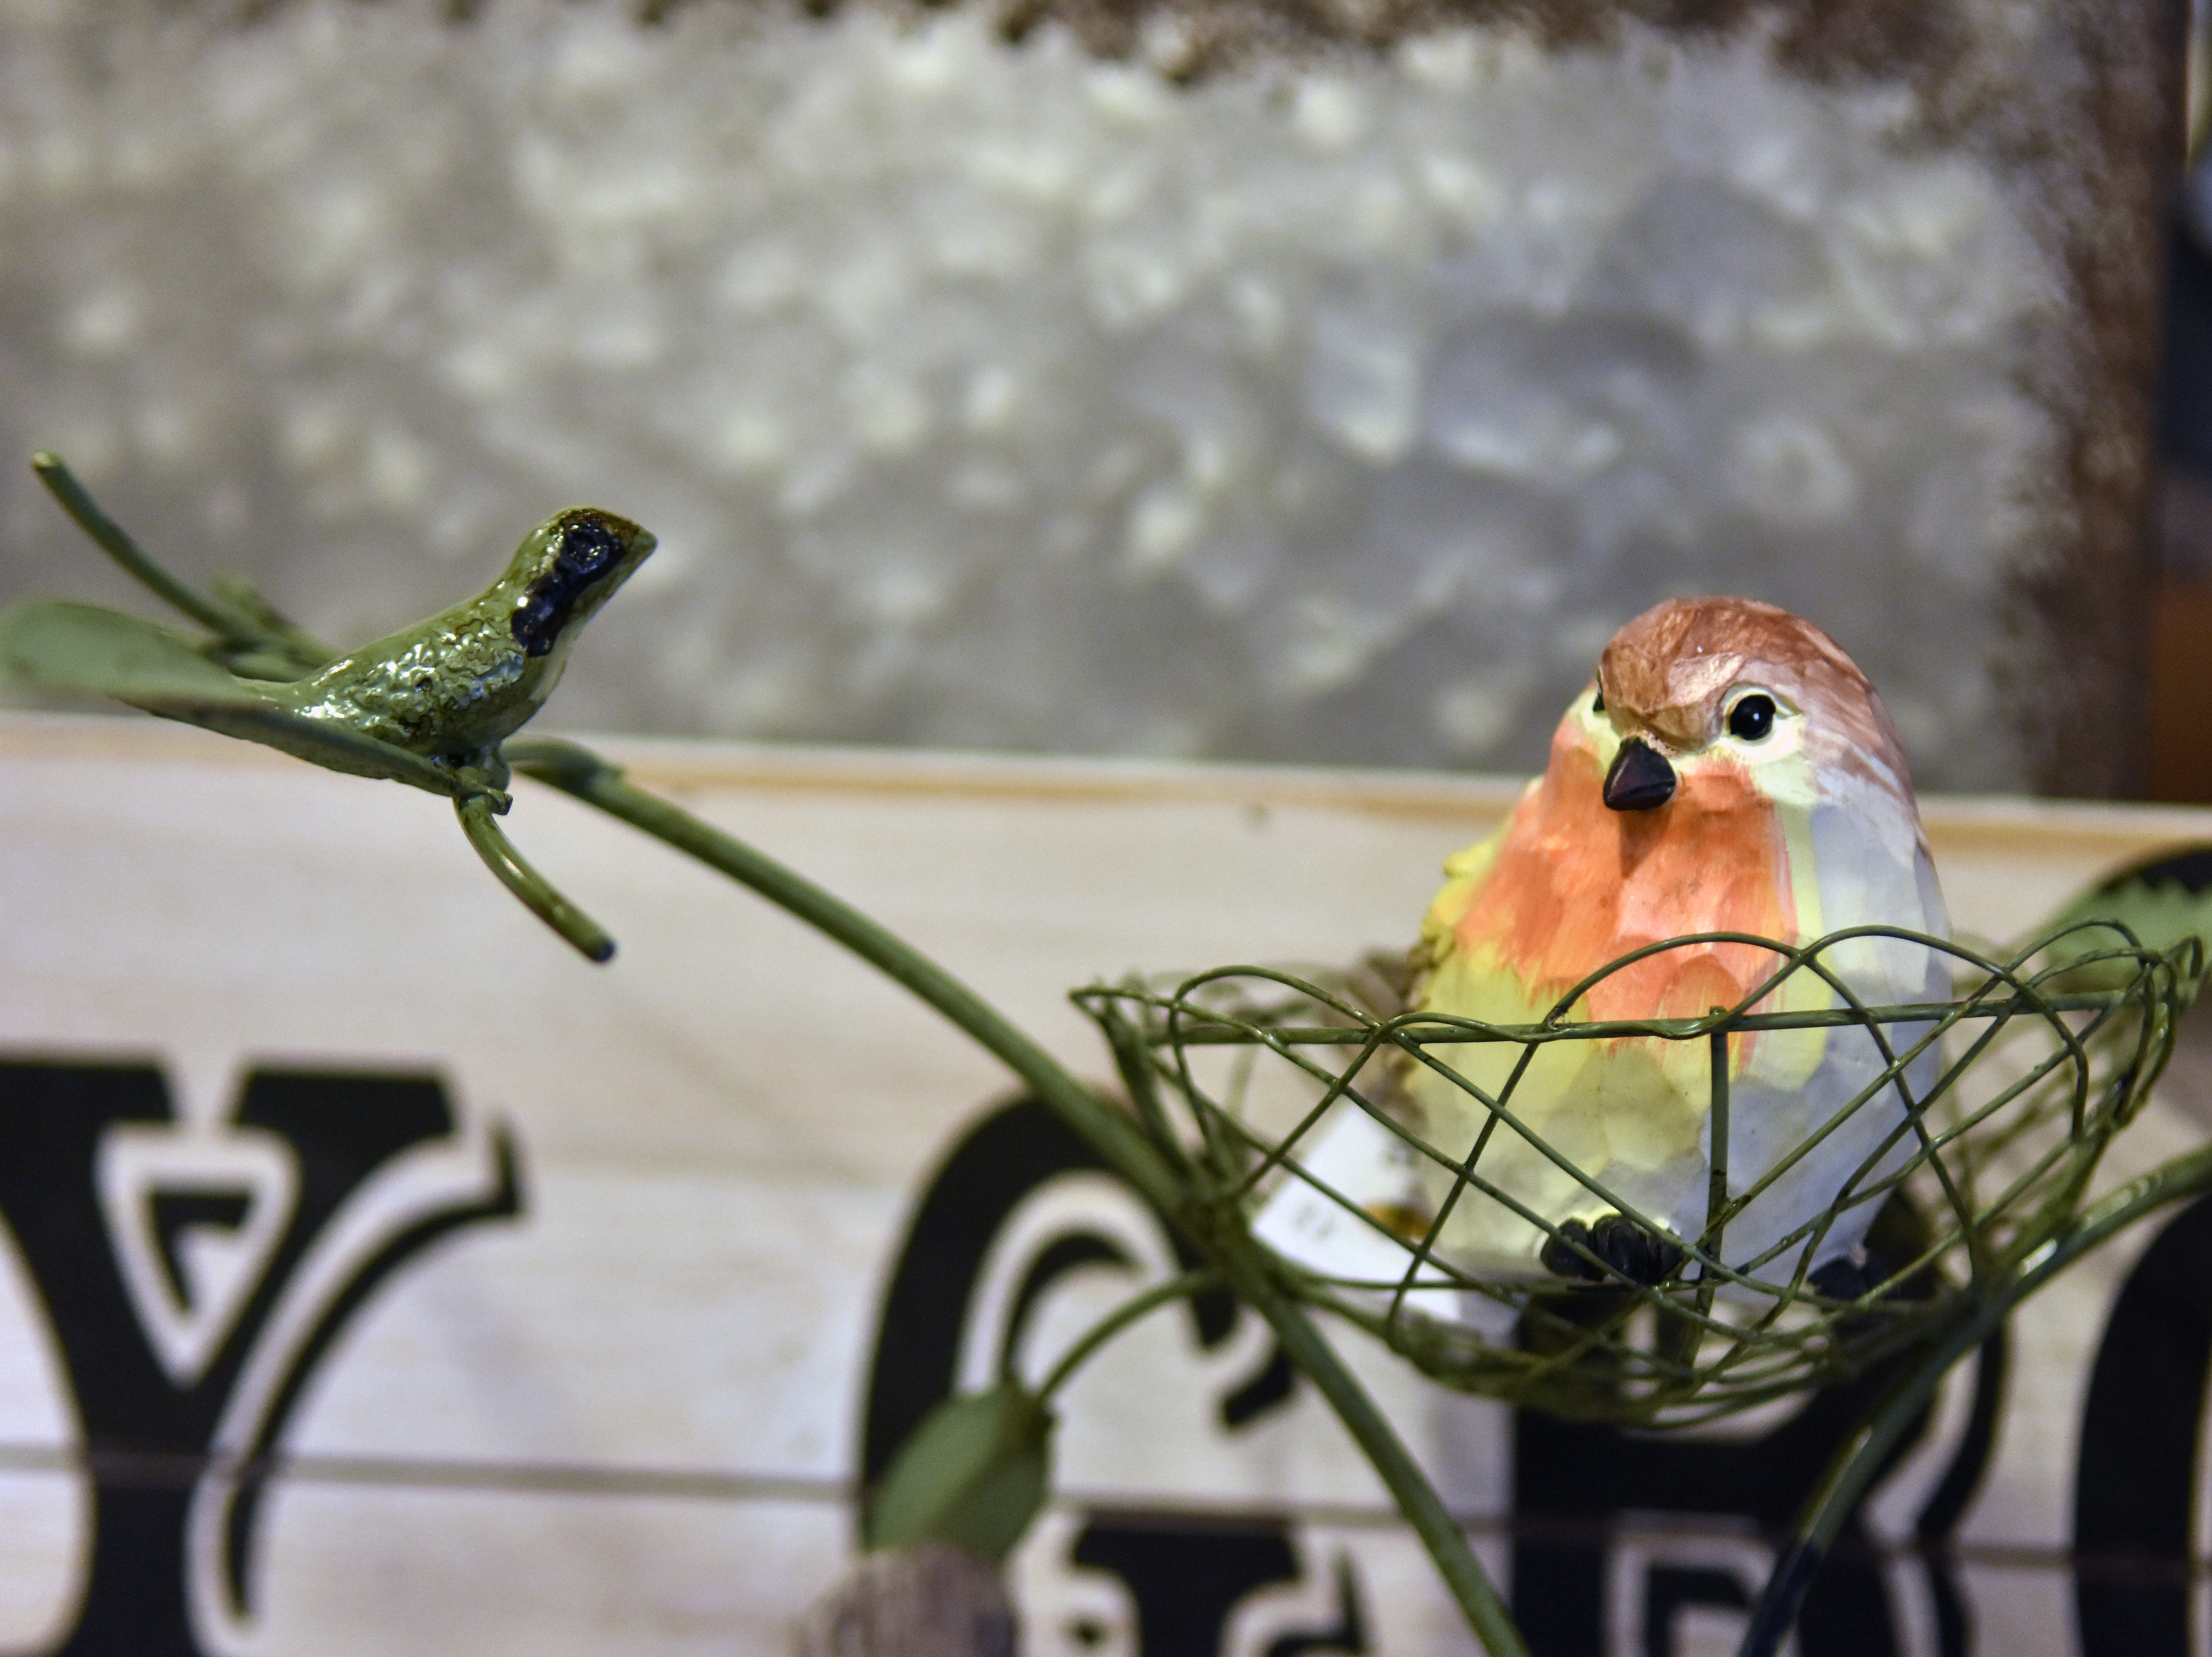 You can almost hear these birds chirping when you enter Real Deals. Check out their variety of fun decor items just in time for spring.